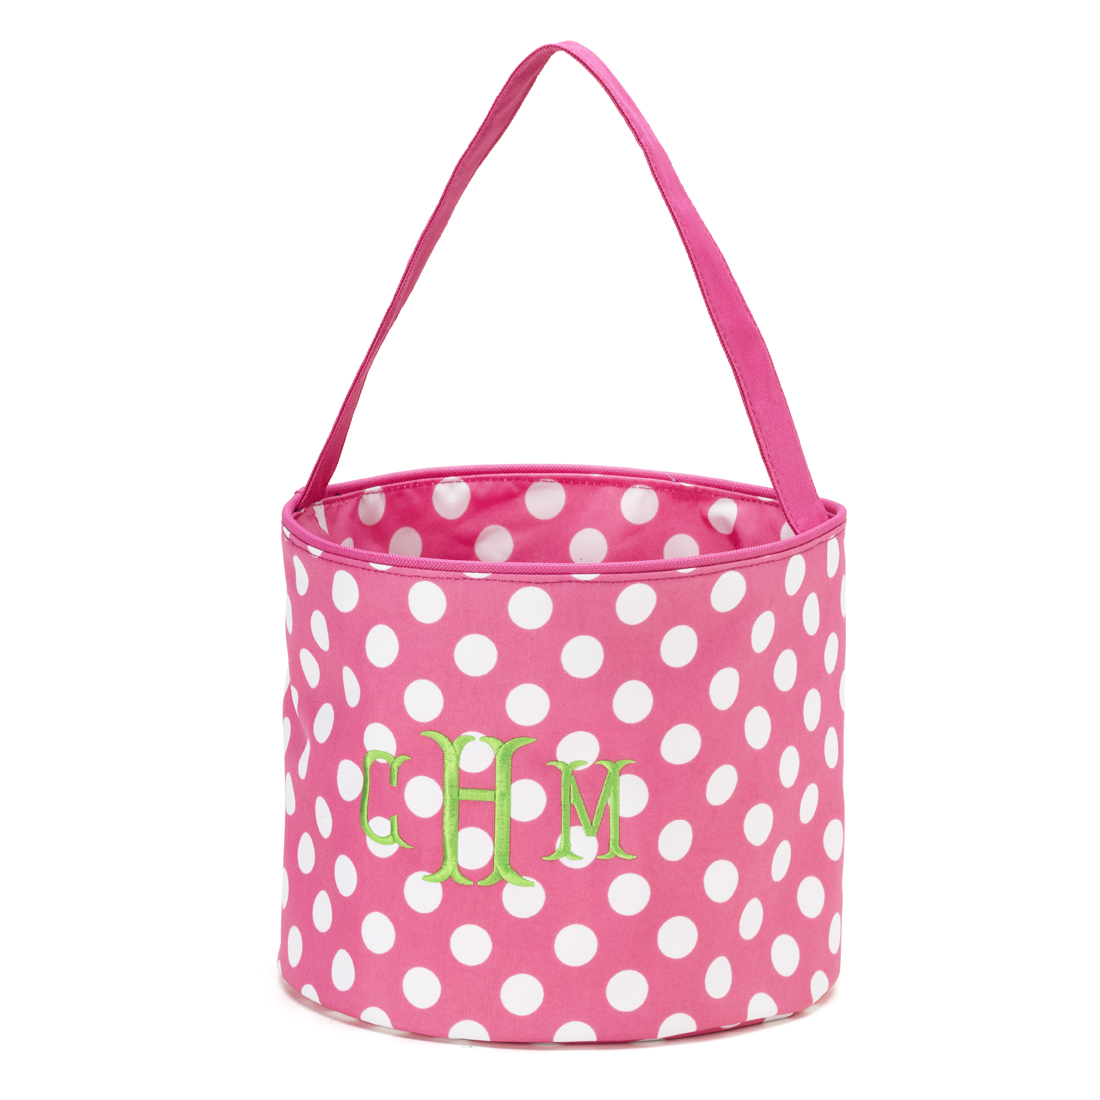 Polka Dot Bucket - Pink and White